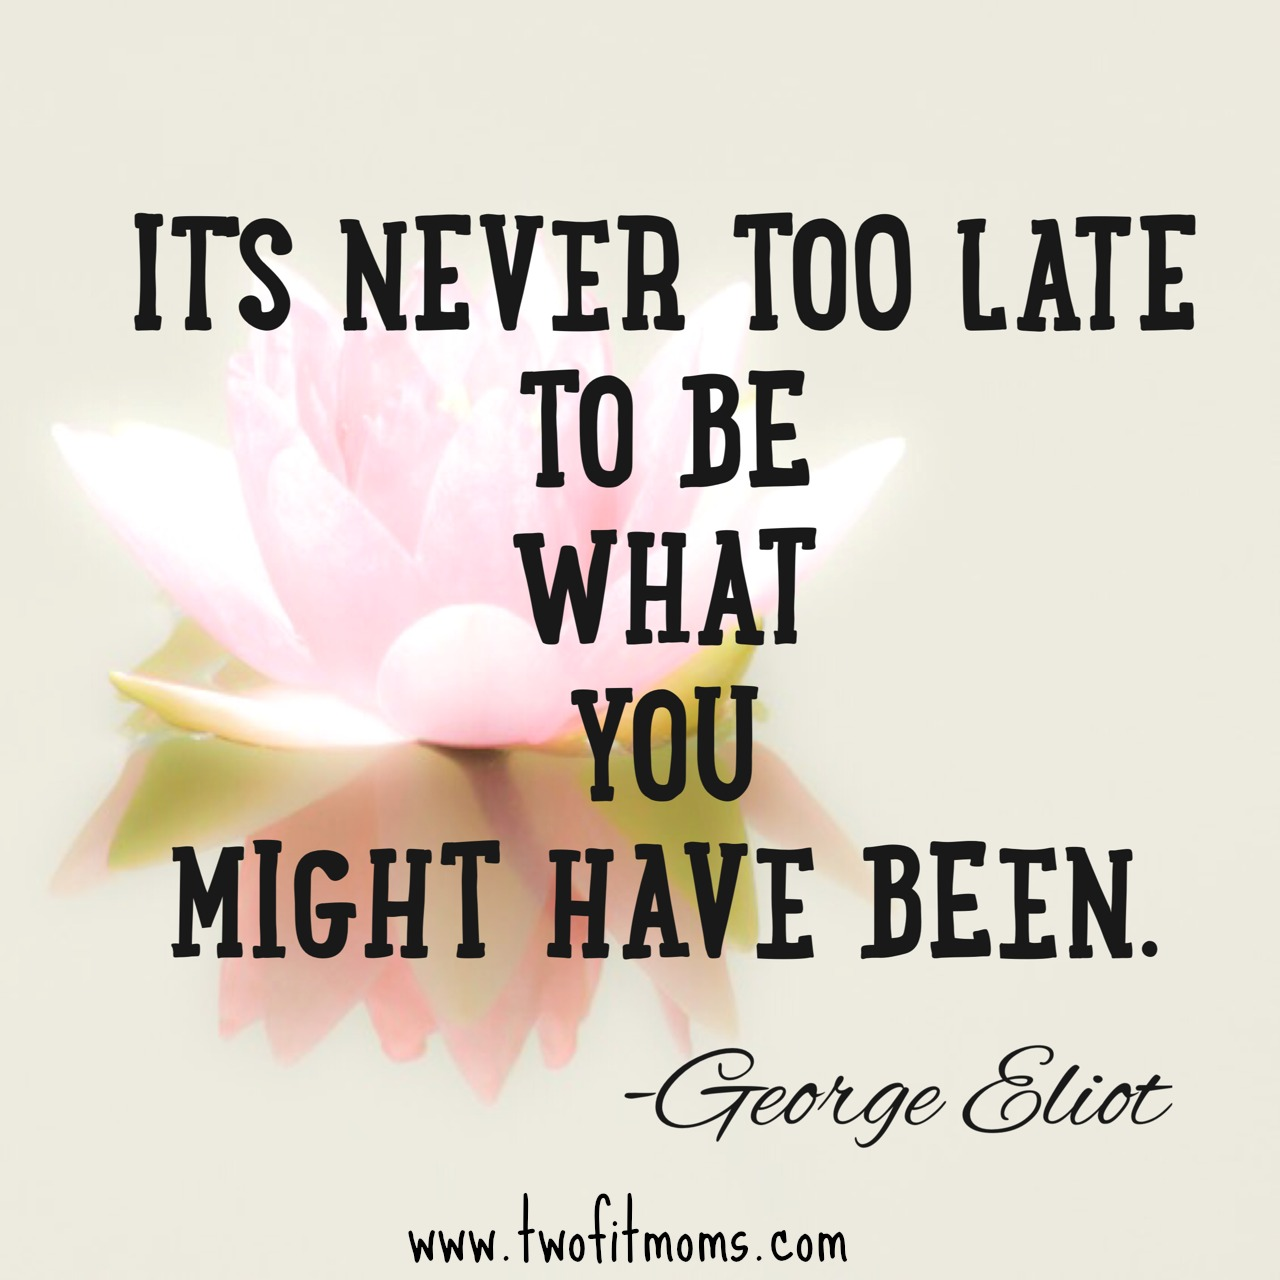 Late Quotes Inspiration Two Fit Moms » It's Never Too Late